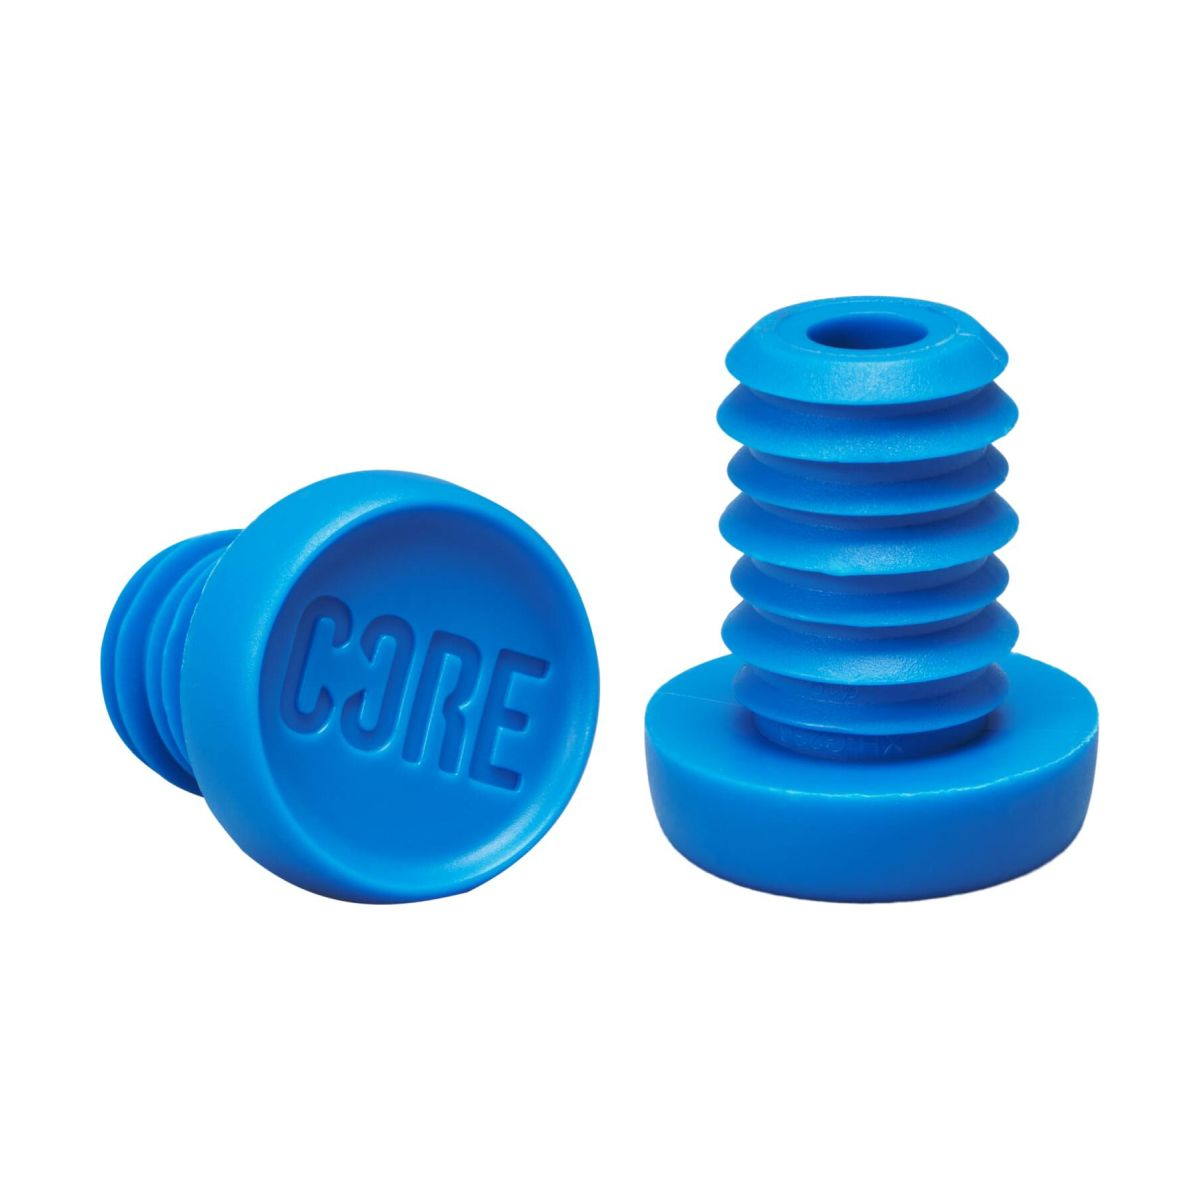 Barendy Core Blue